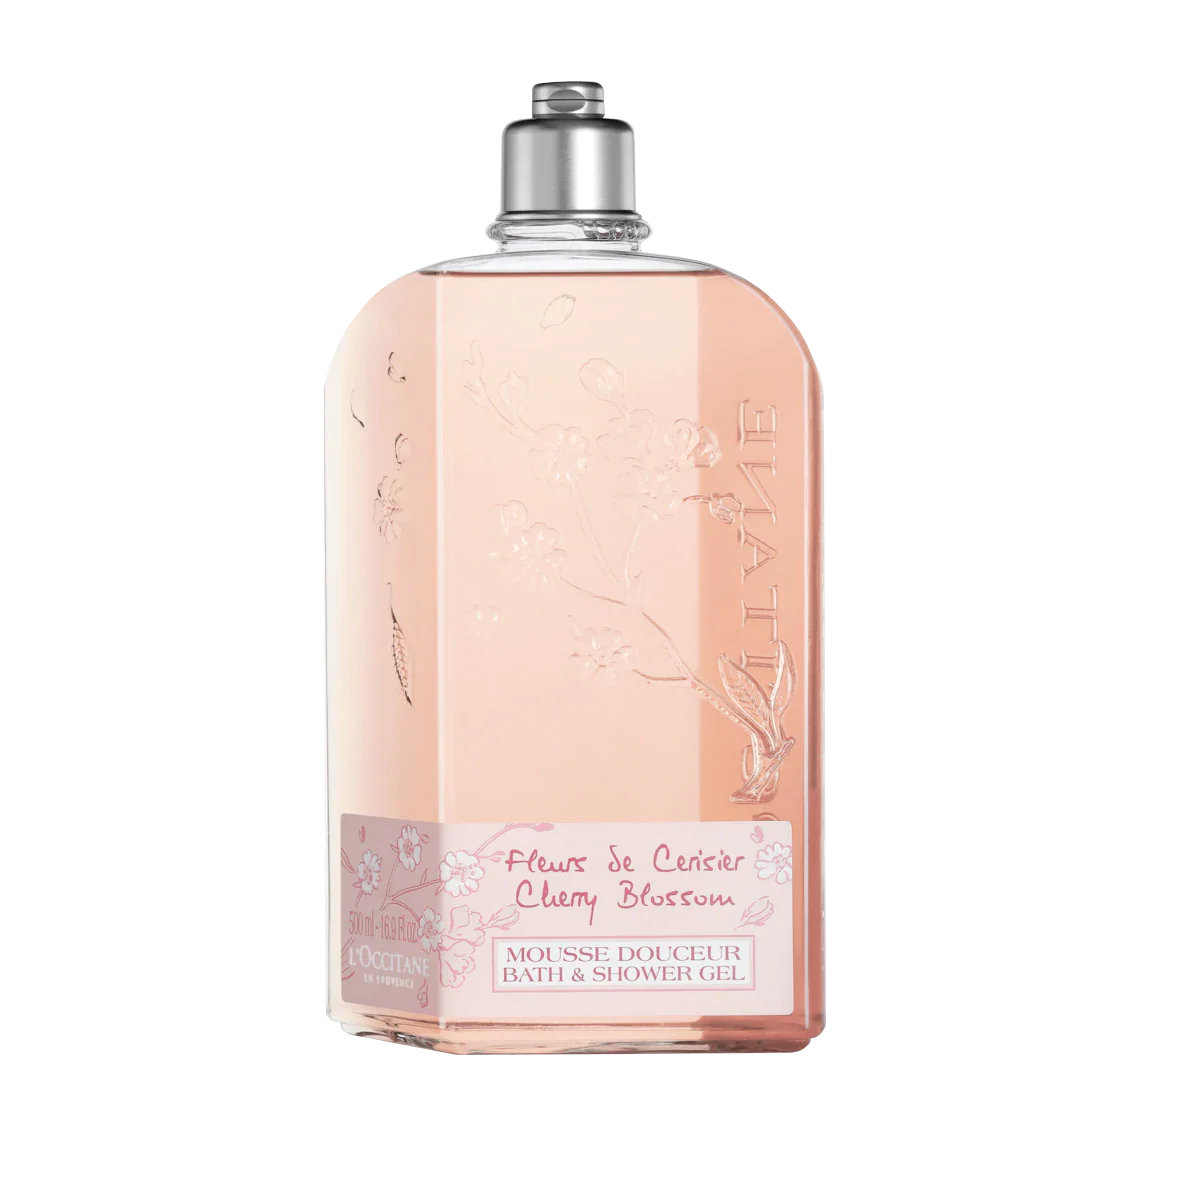 Cherry Blossom Bath Shower Gel Limited Edition Size